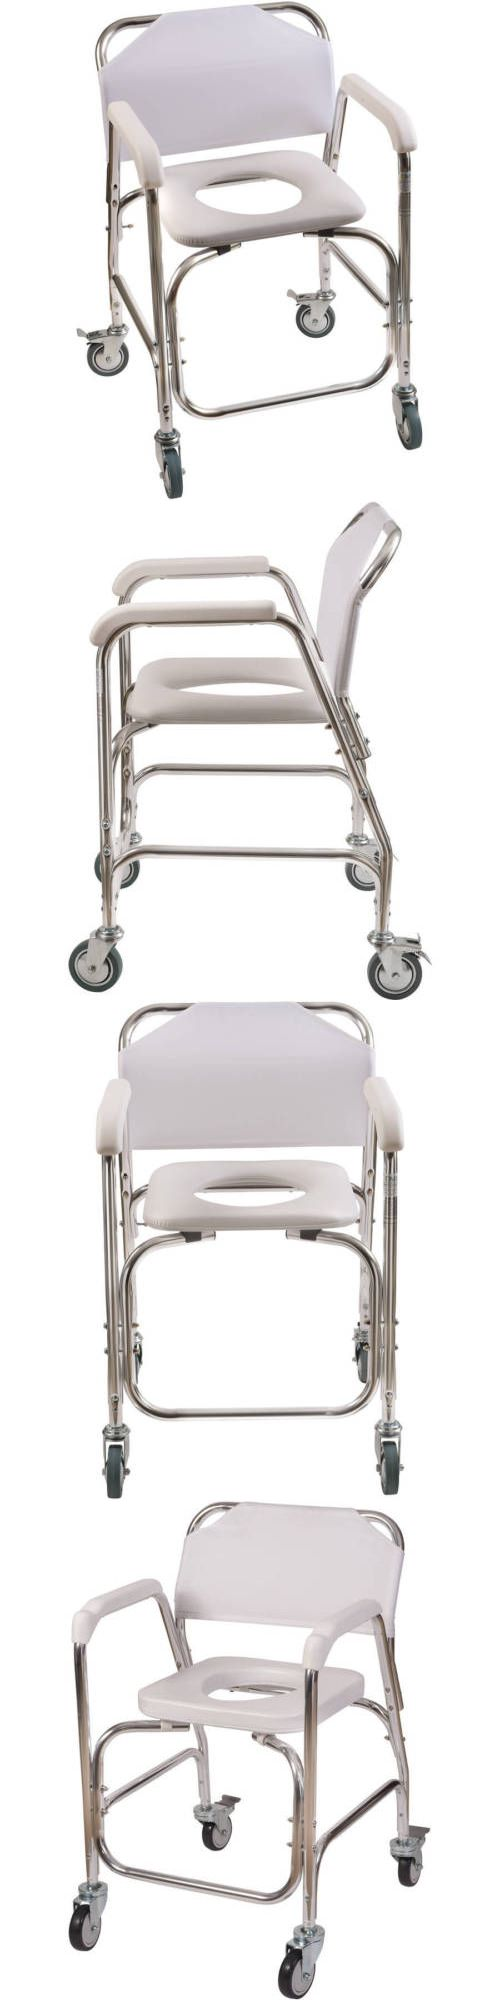 toilet seats handicapped shower chair with wheels elderly disabled transfer bench commode u003e buy